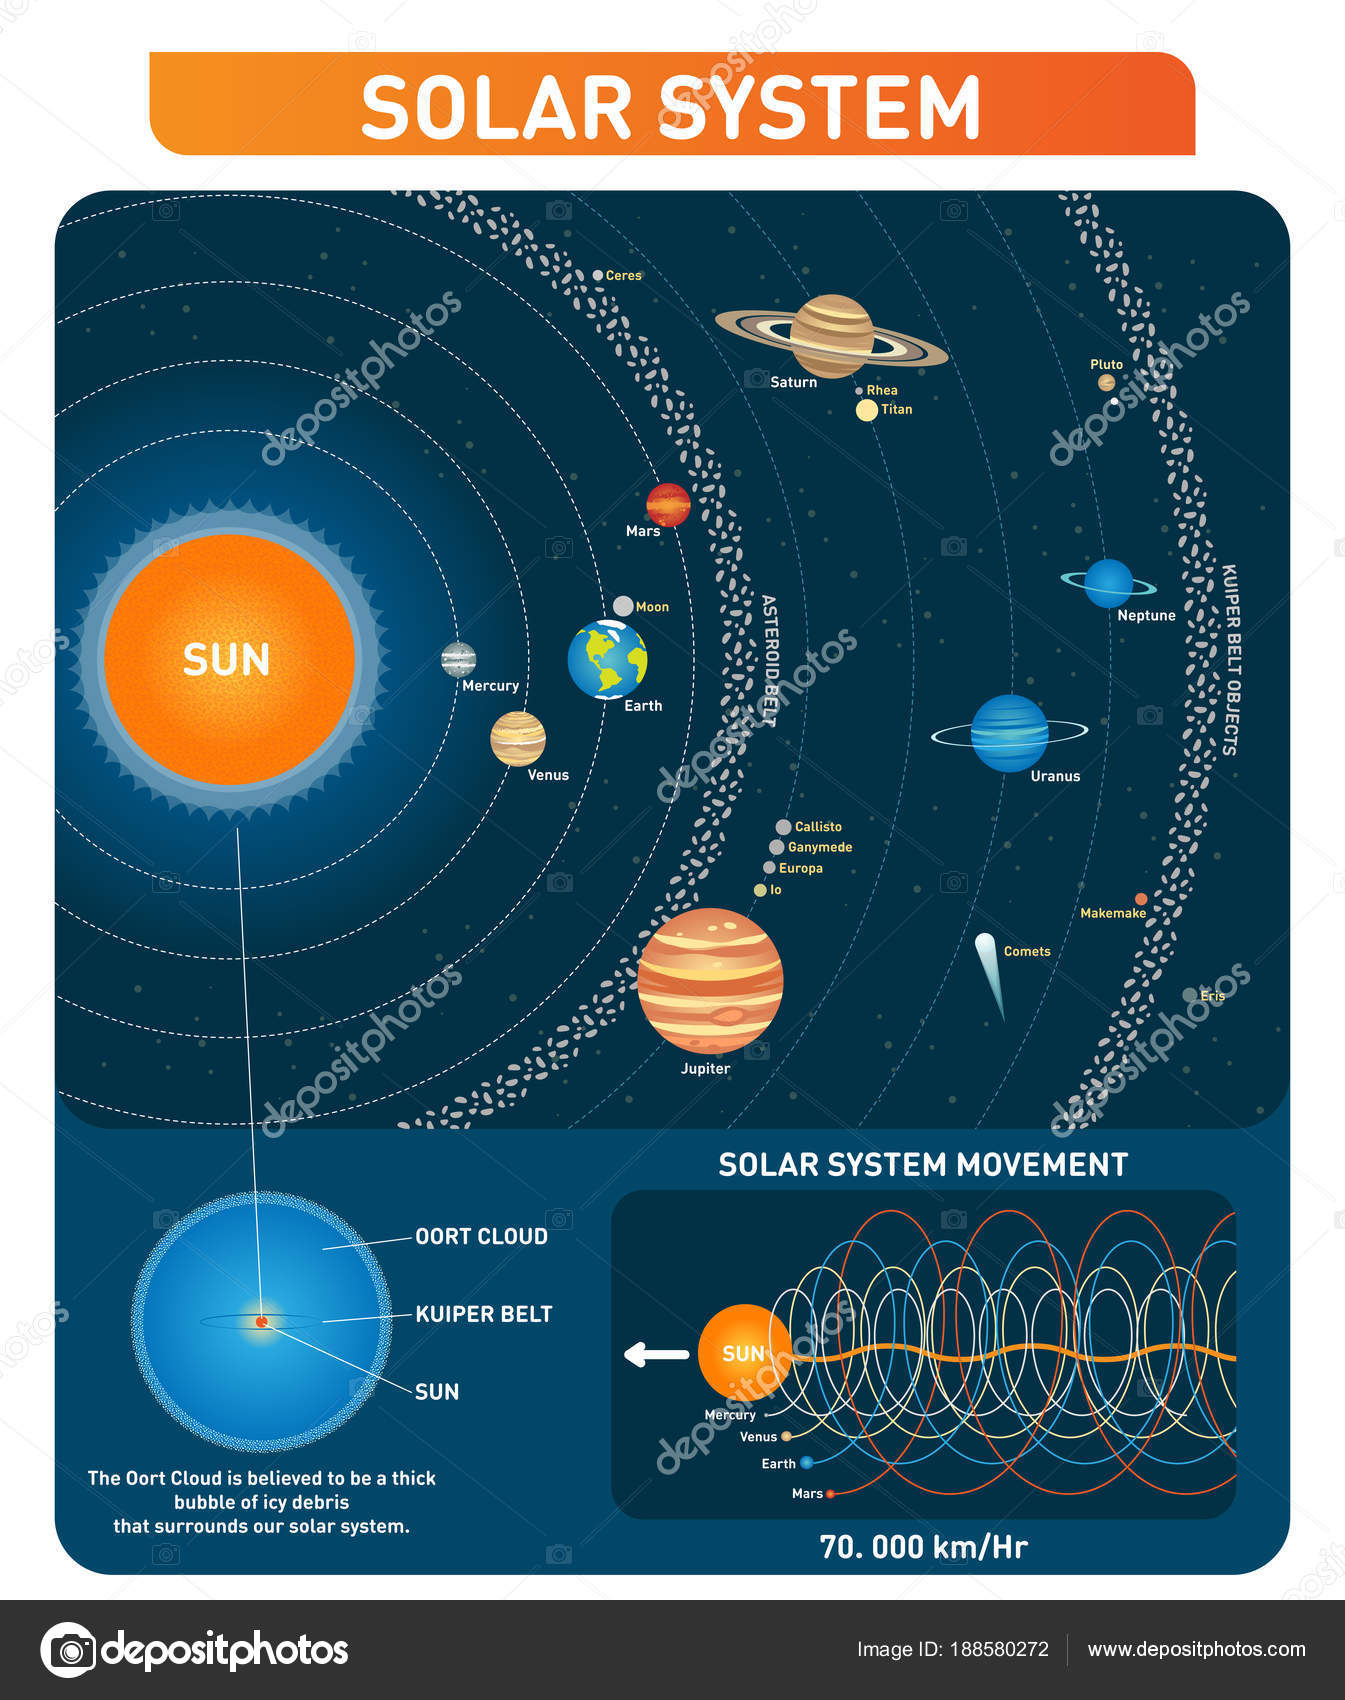 Diagram of solar system with asteroid belt | Solar system